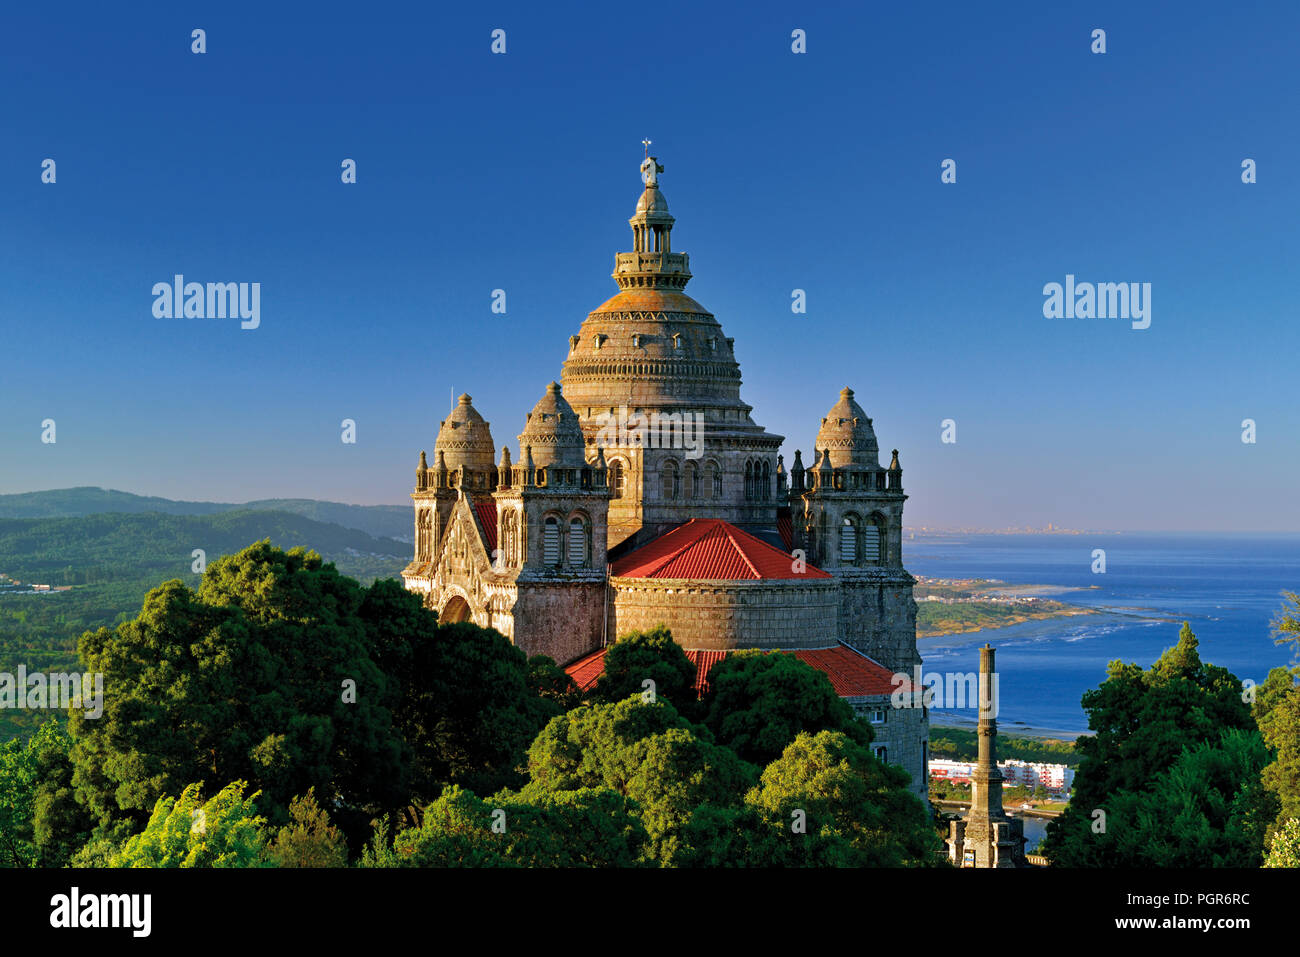 Basilica Santa Luzia and spectacular view to the coast and beaches of Viana do Castelo - Stock Image